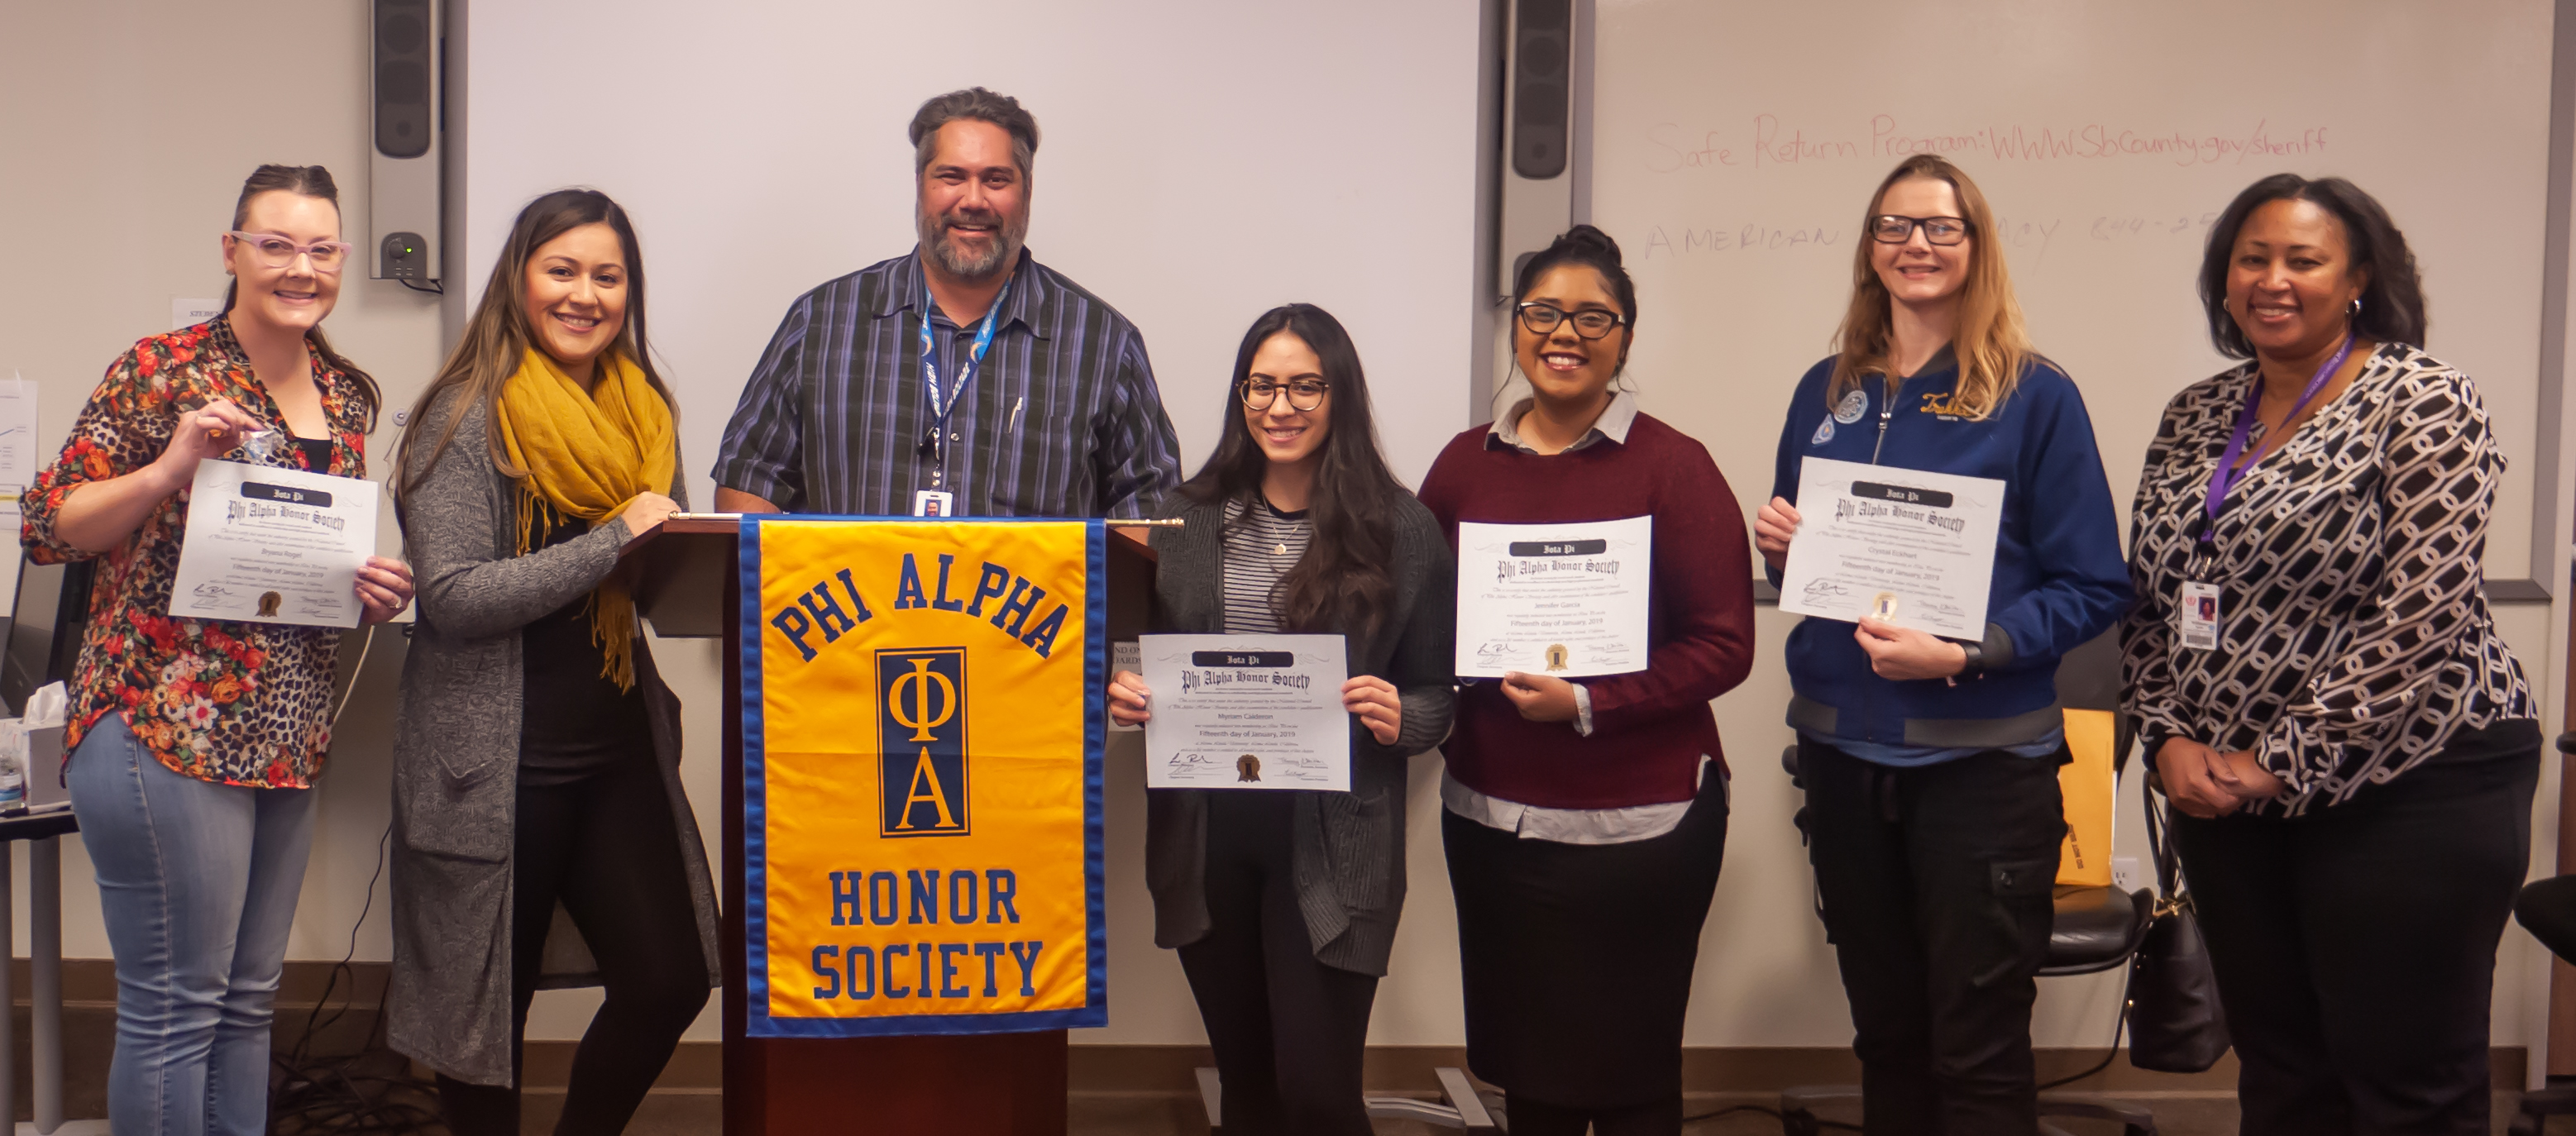 Phi Alpha honor society members and faculty advisor with awards.